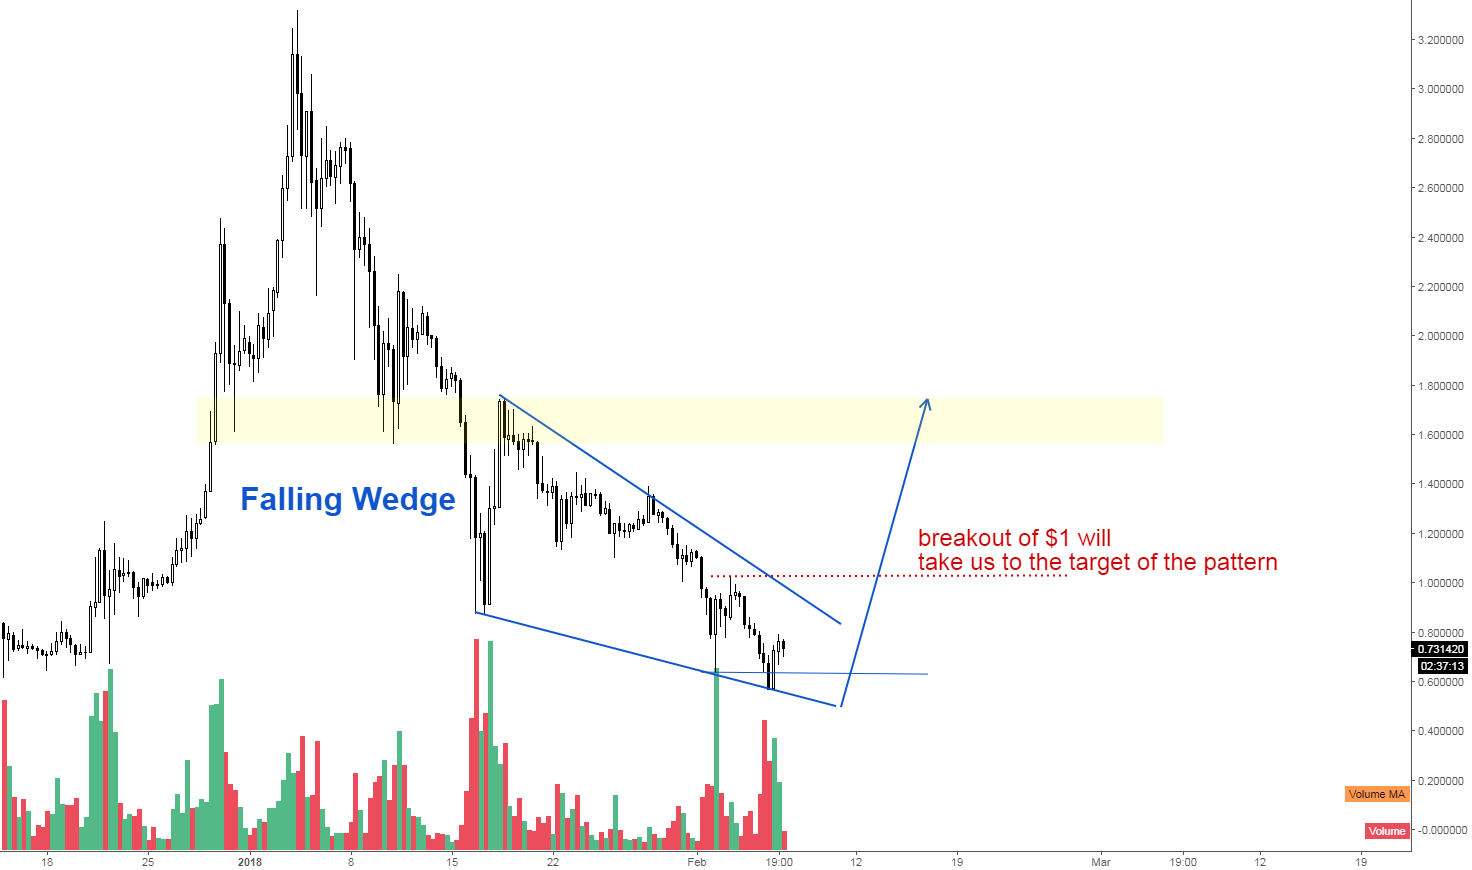 Ripple - Falling Wedge